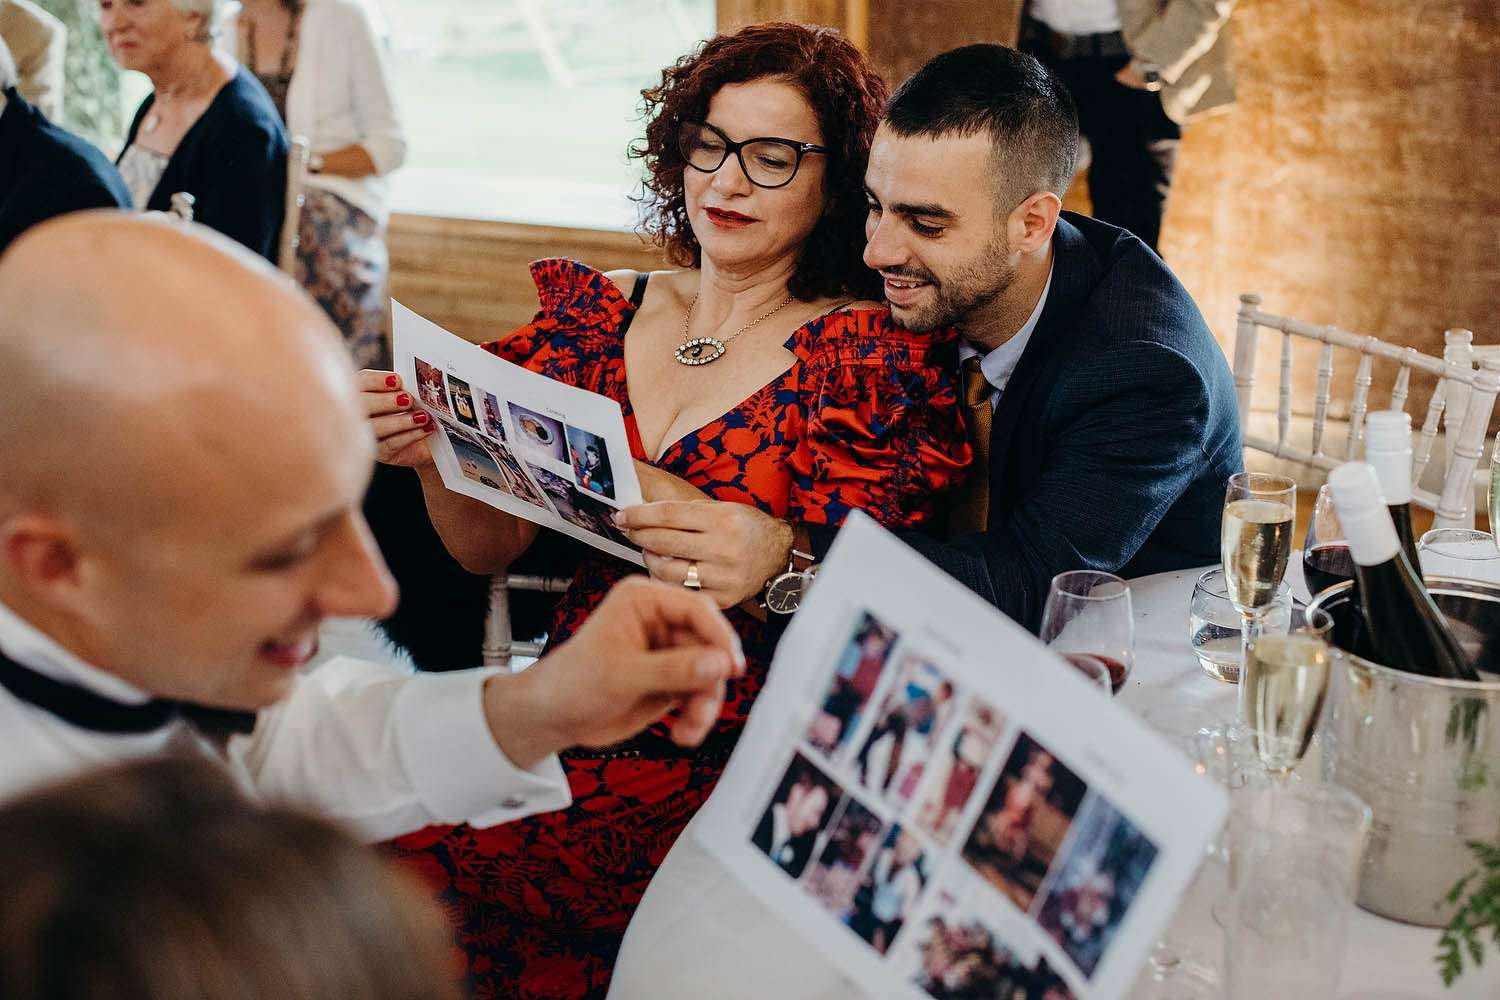 best man prints out pictures of groom